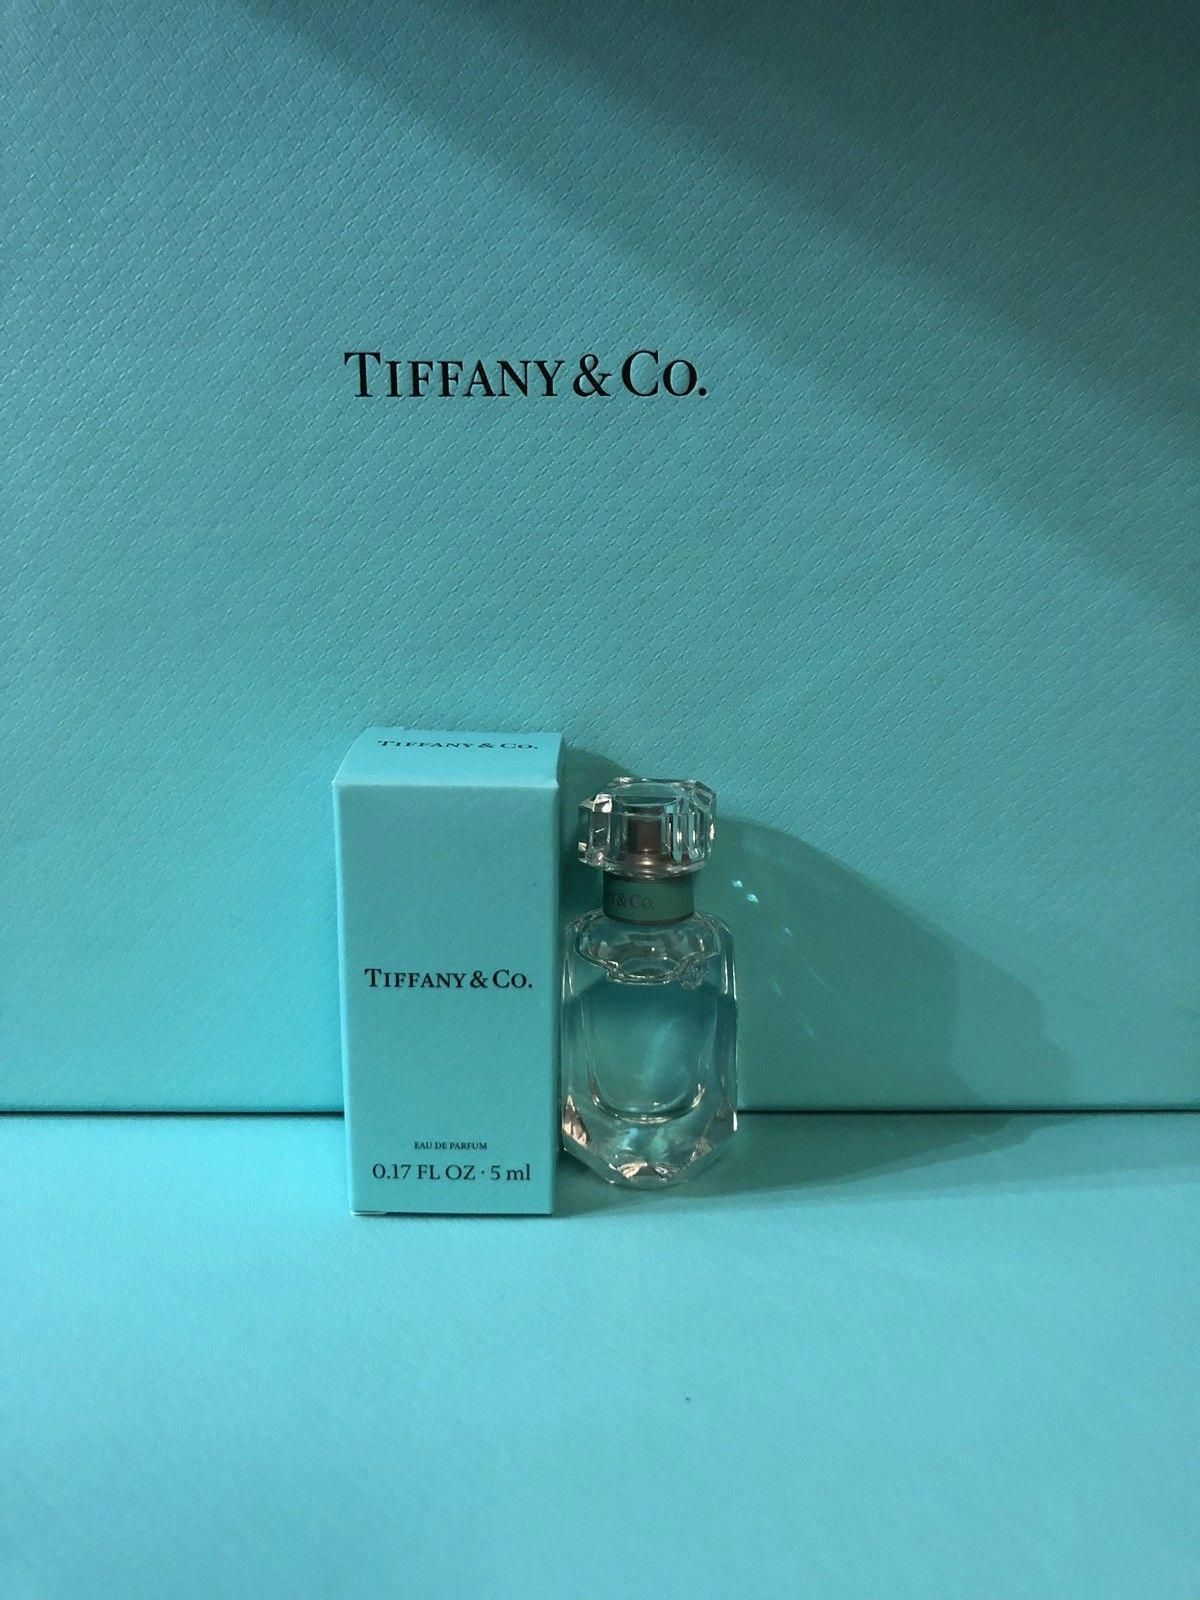 1200 Tiffany Co Eau De Parfum Mini Perfume 17 Fl Oz5 Ml